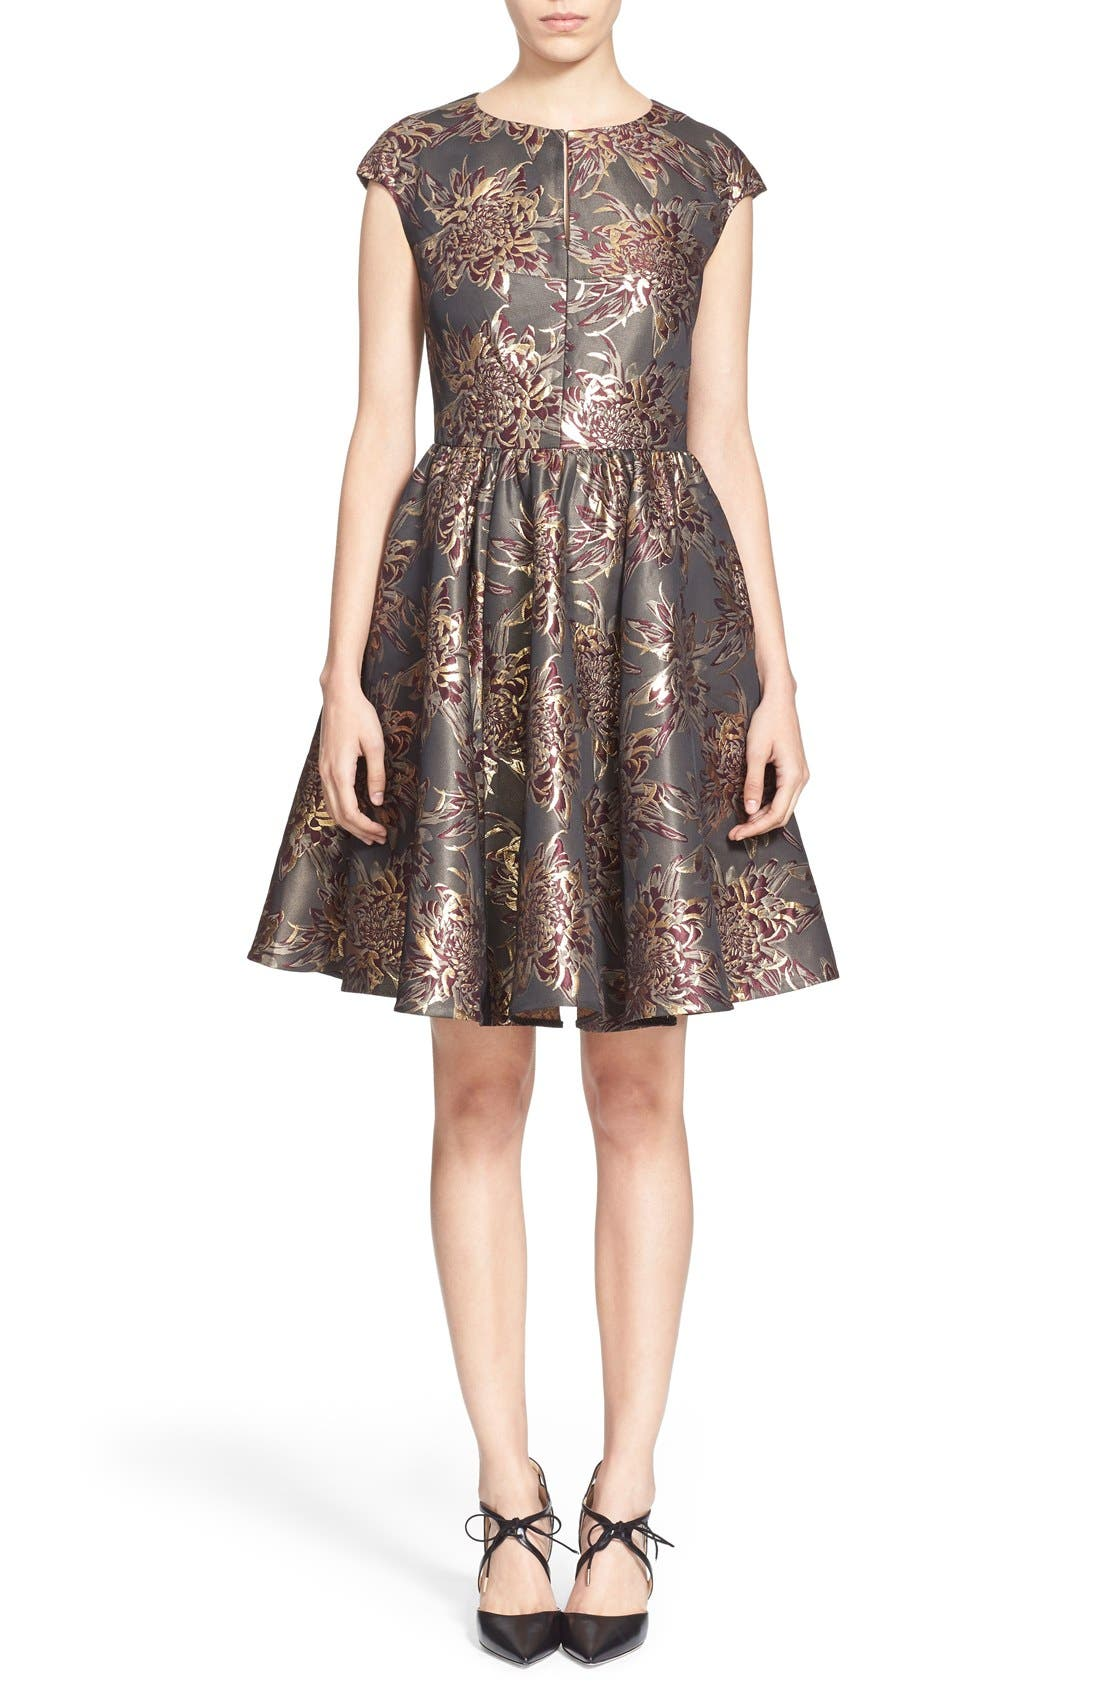 Alternate Image 1 Selected - Ted Baker London 'Laurey' Metallic Floral Jacquard Fit & Flare Dress